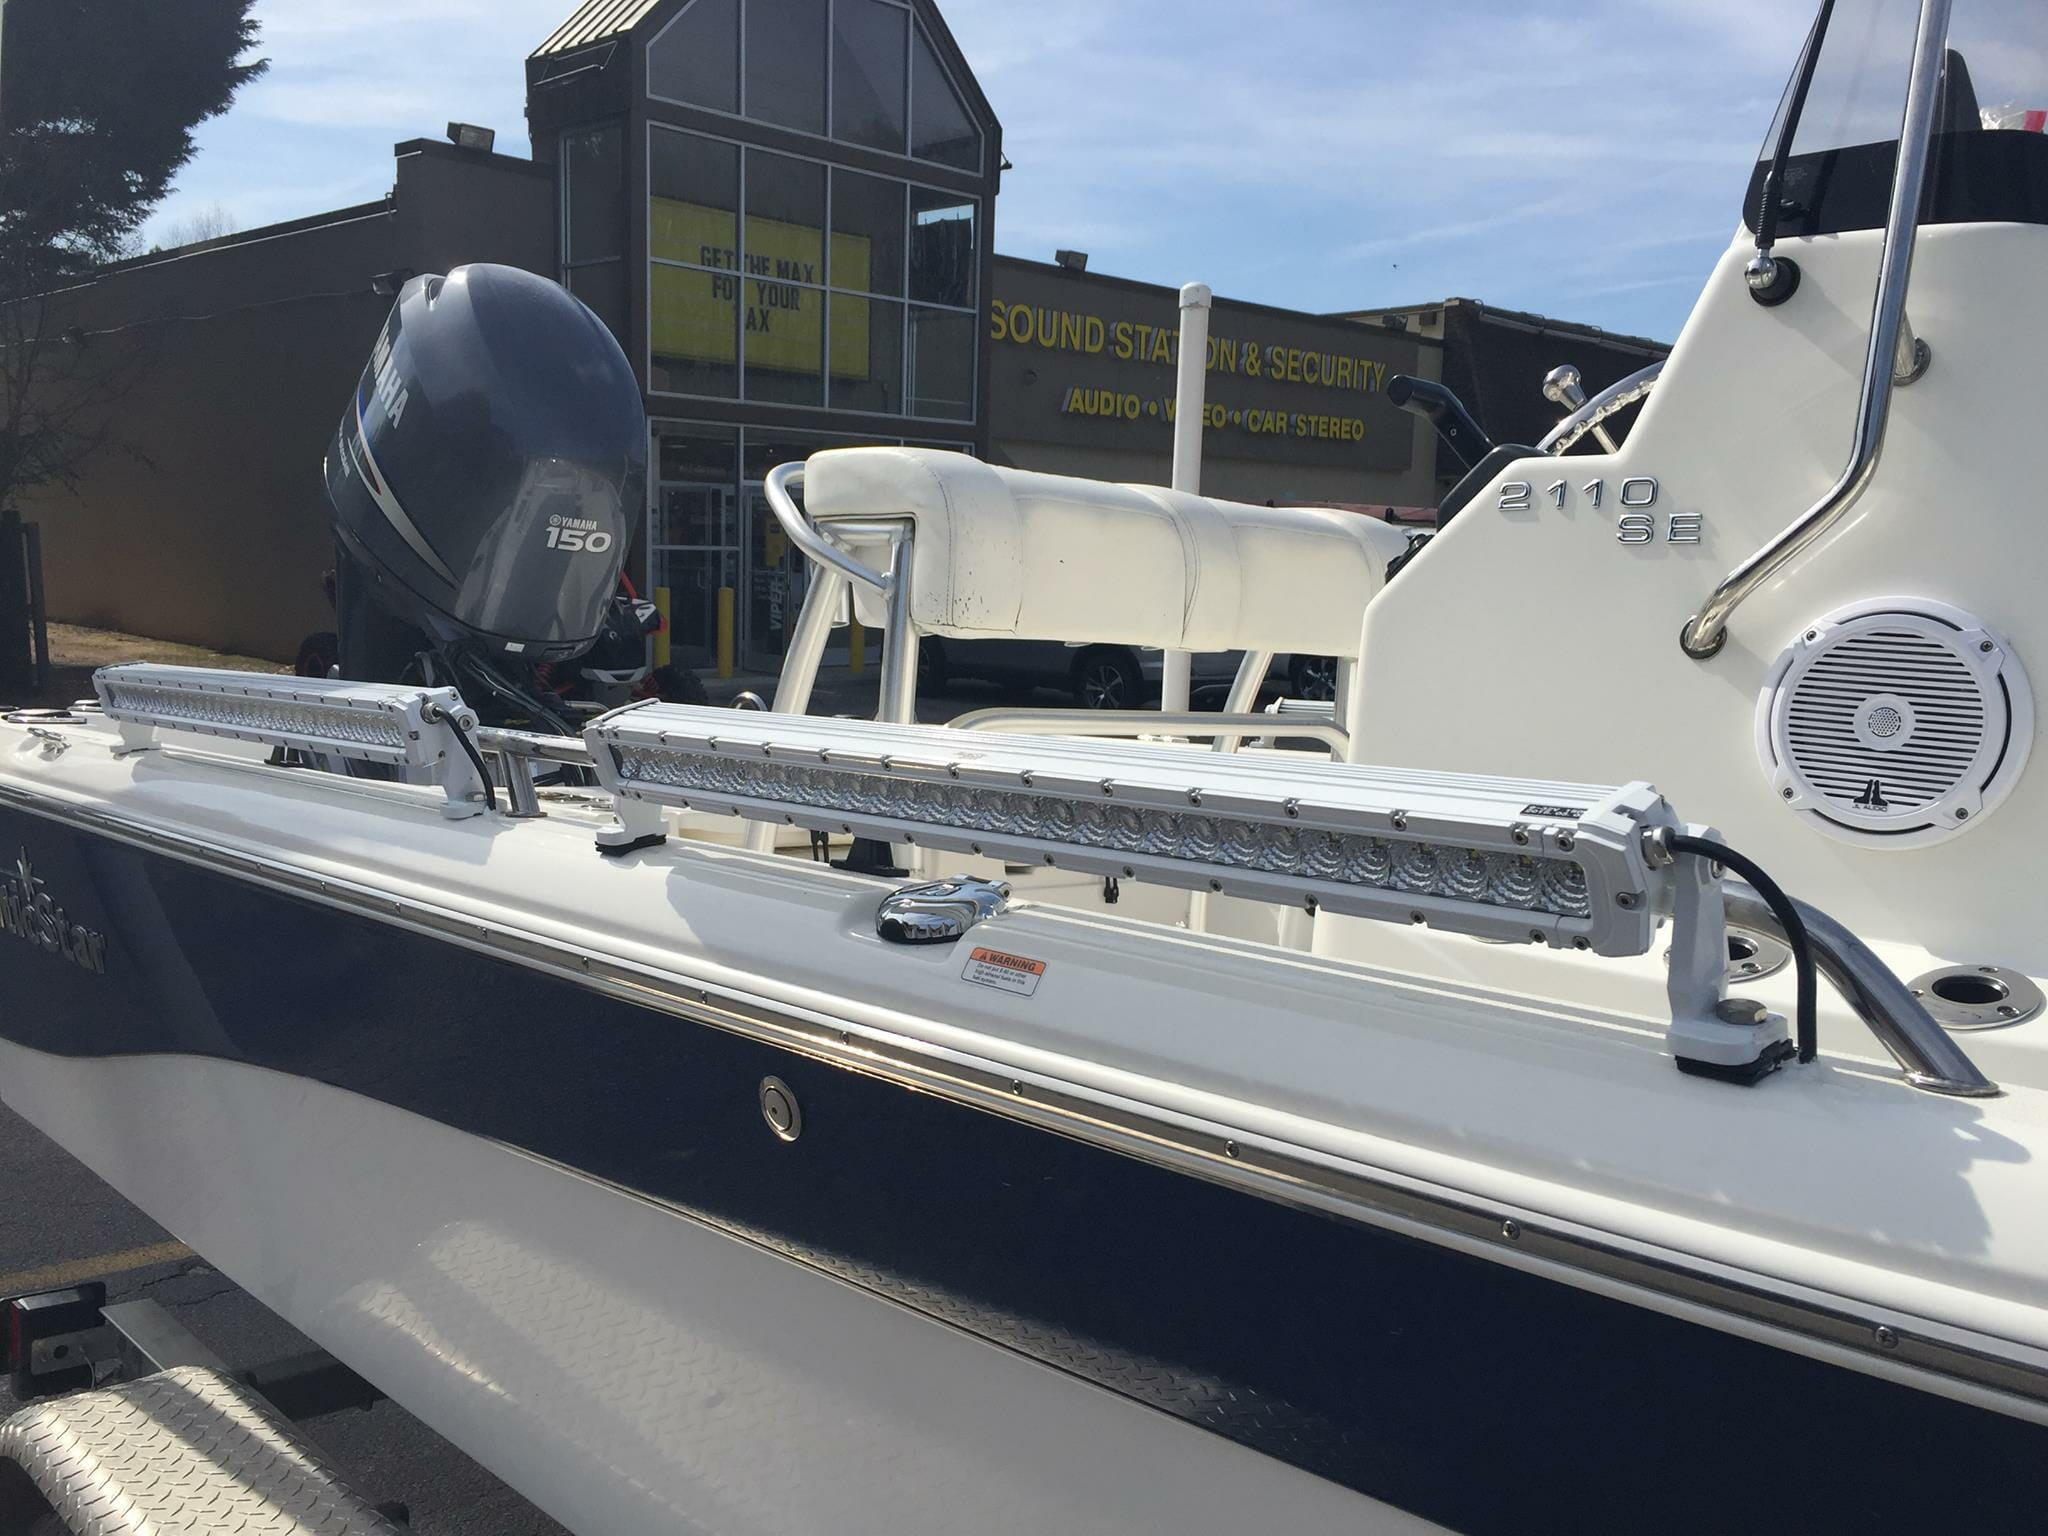 sound station security boat installation lights